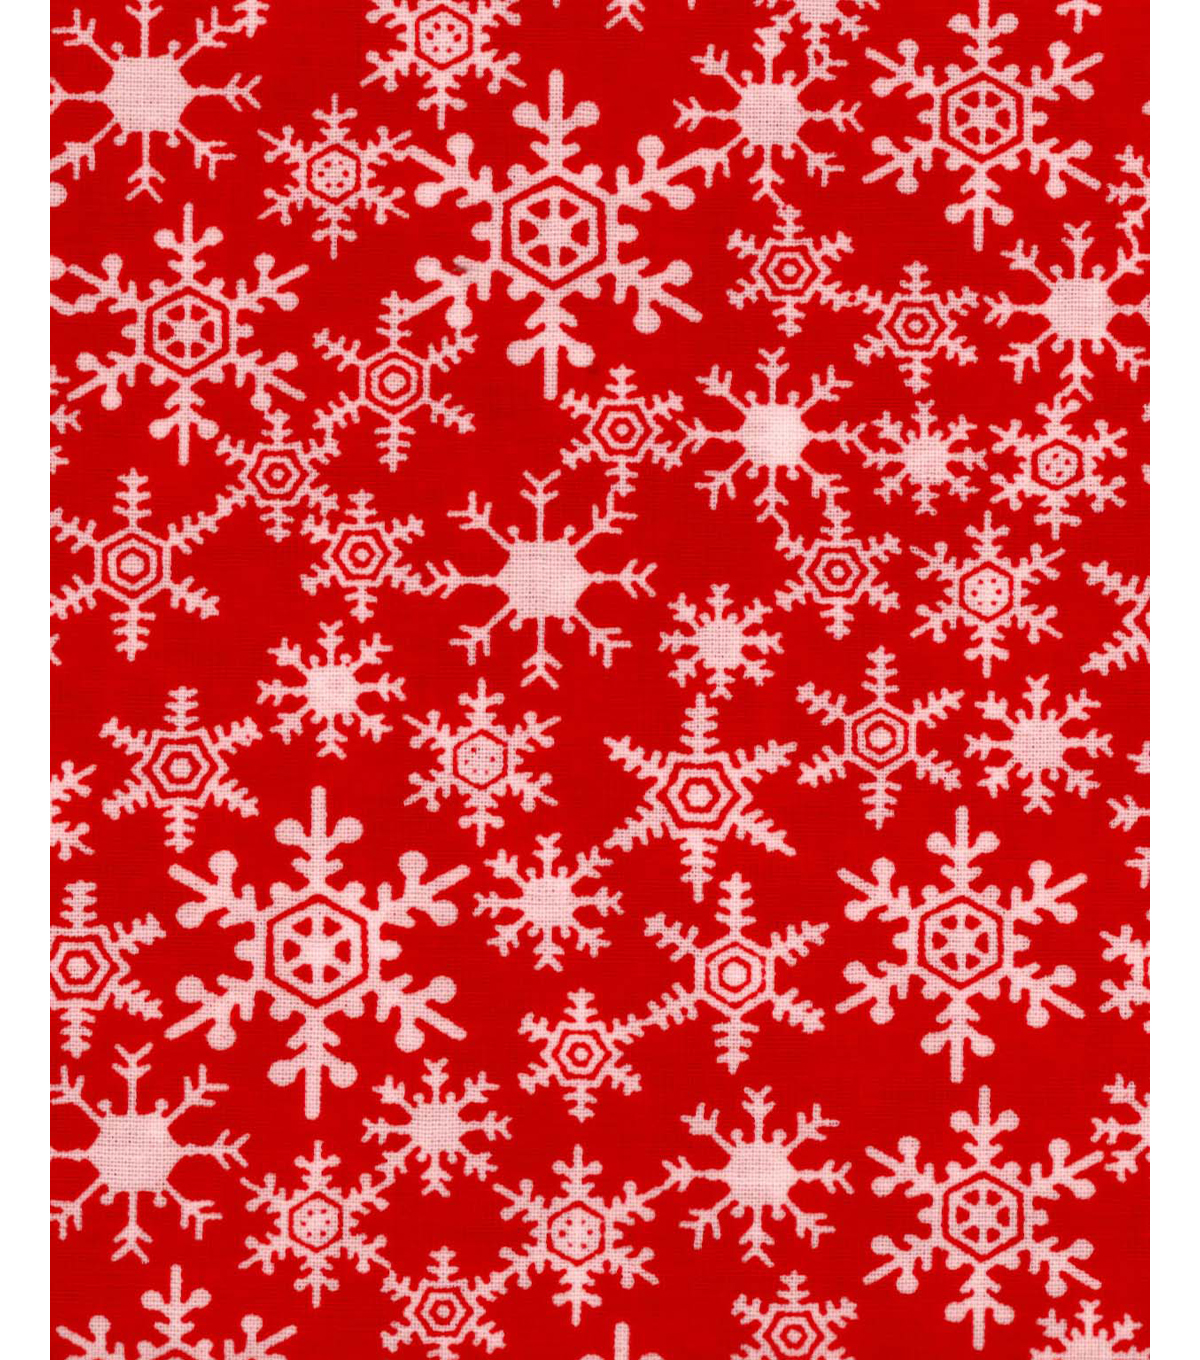 Noel Collection Christmas Snowflakes Red Joann